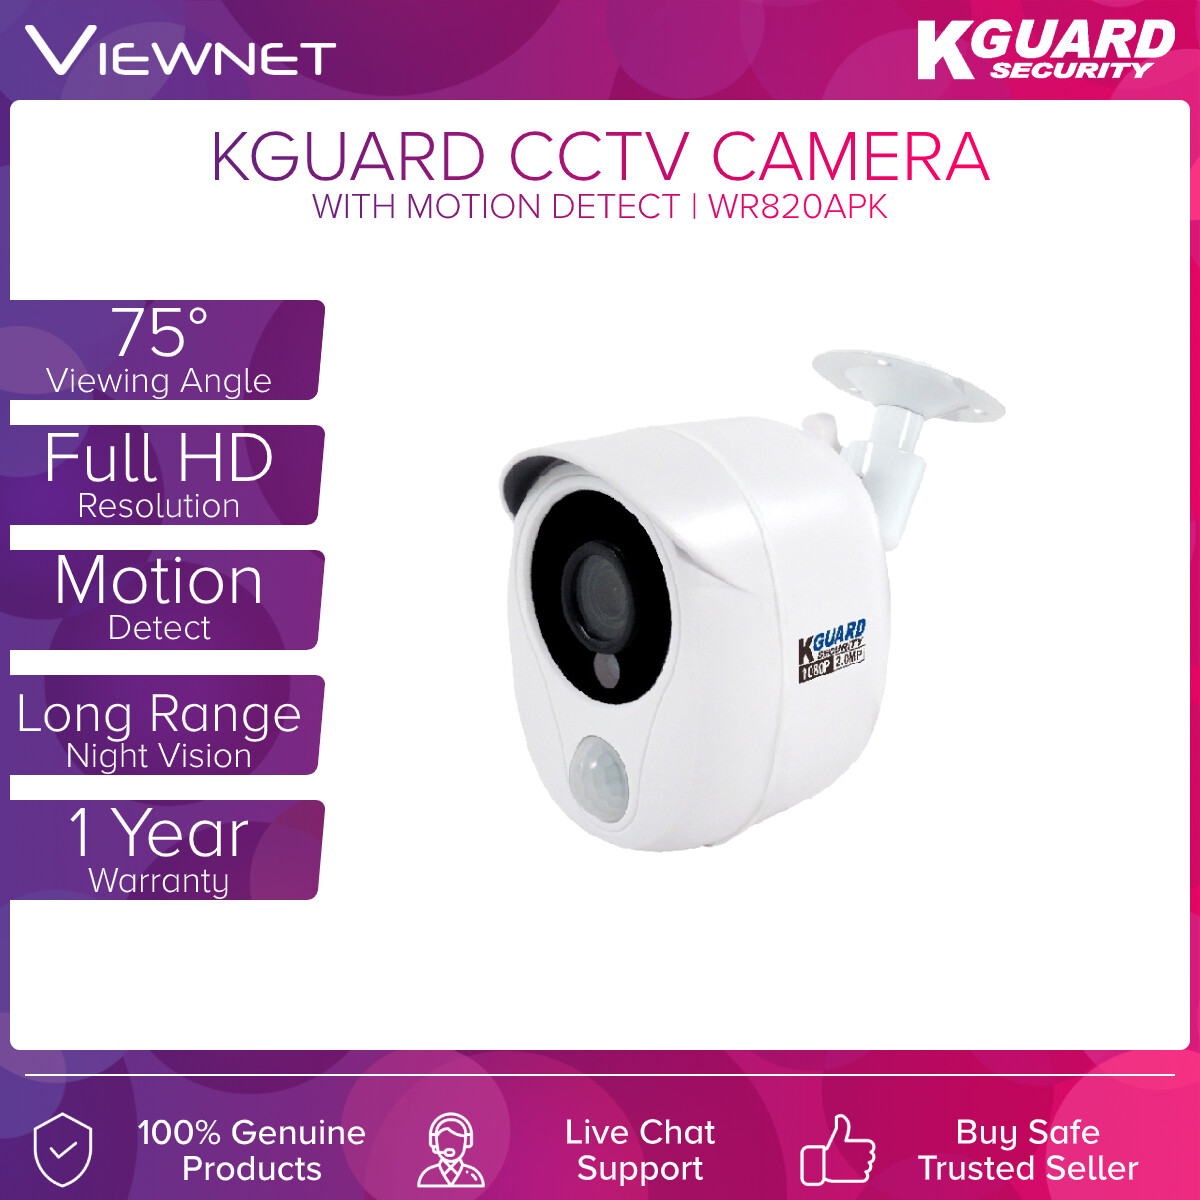 KGUARD CCTV CAMERA + MOTION DETECT (WP820APK)